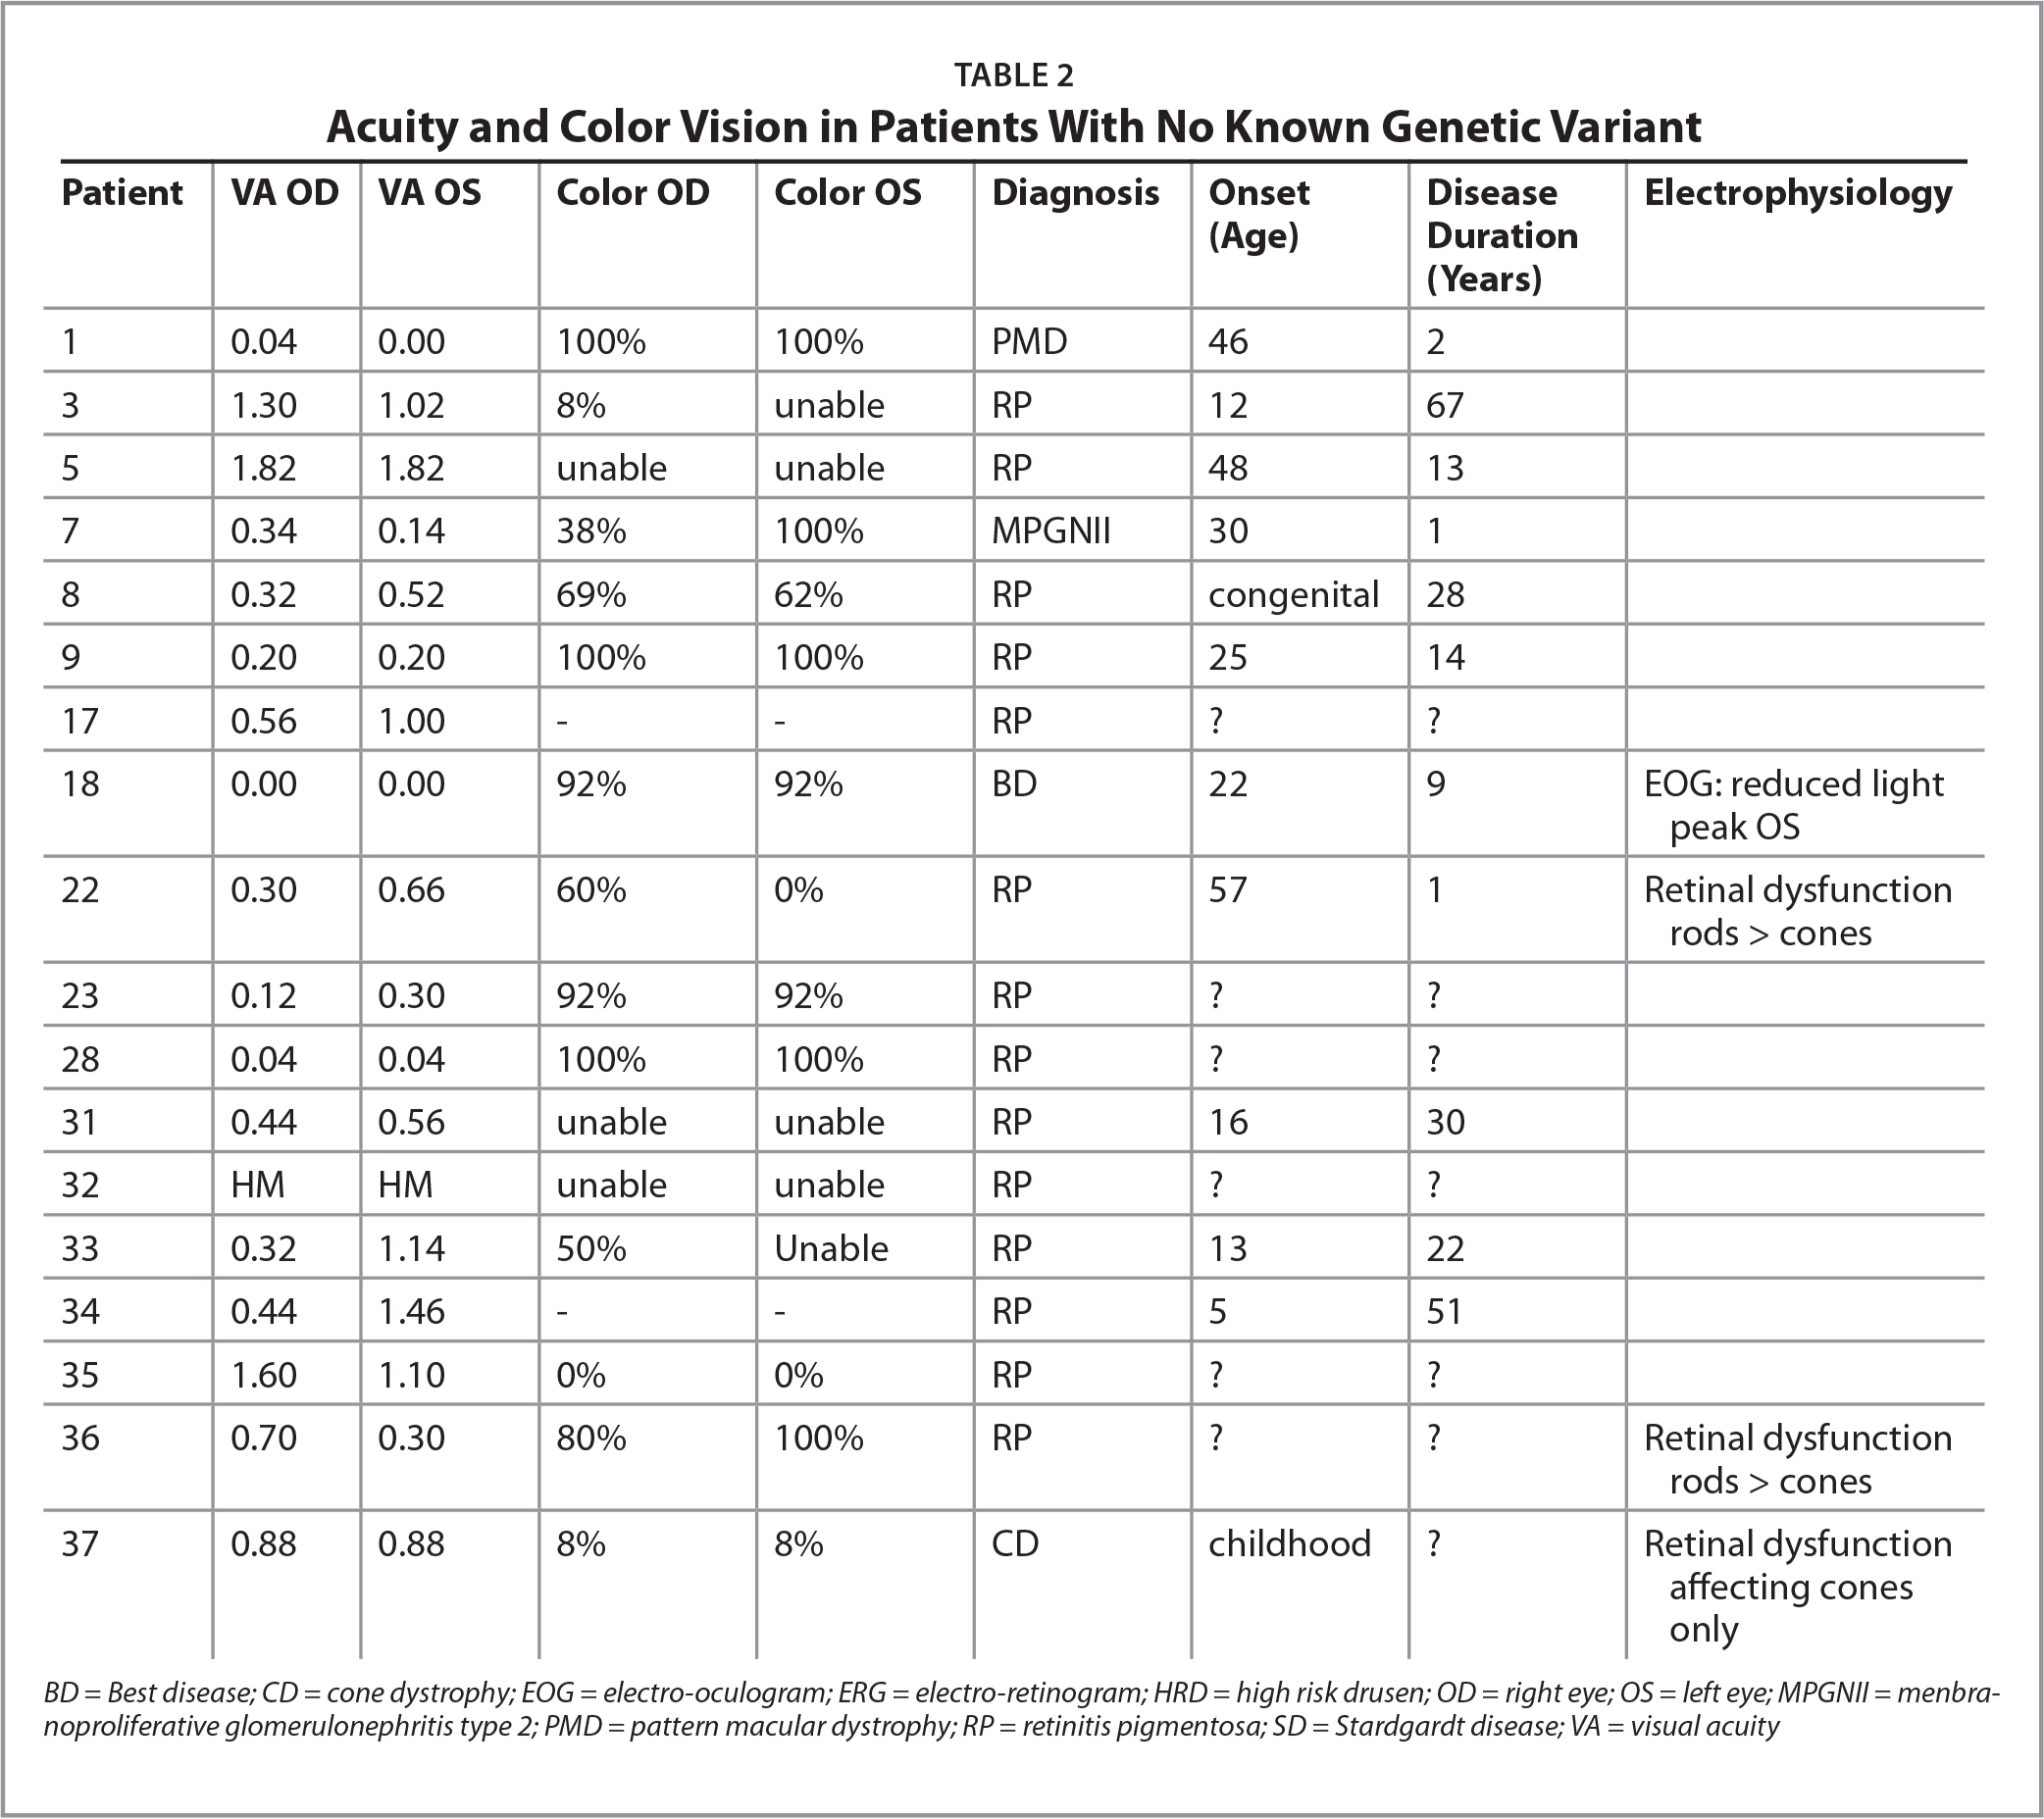 Acuity and Color Vision in Patients With No Known Genetic Variant